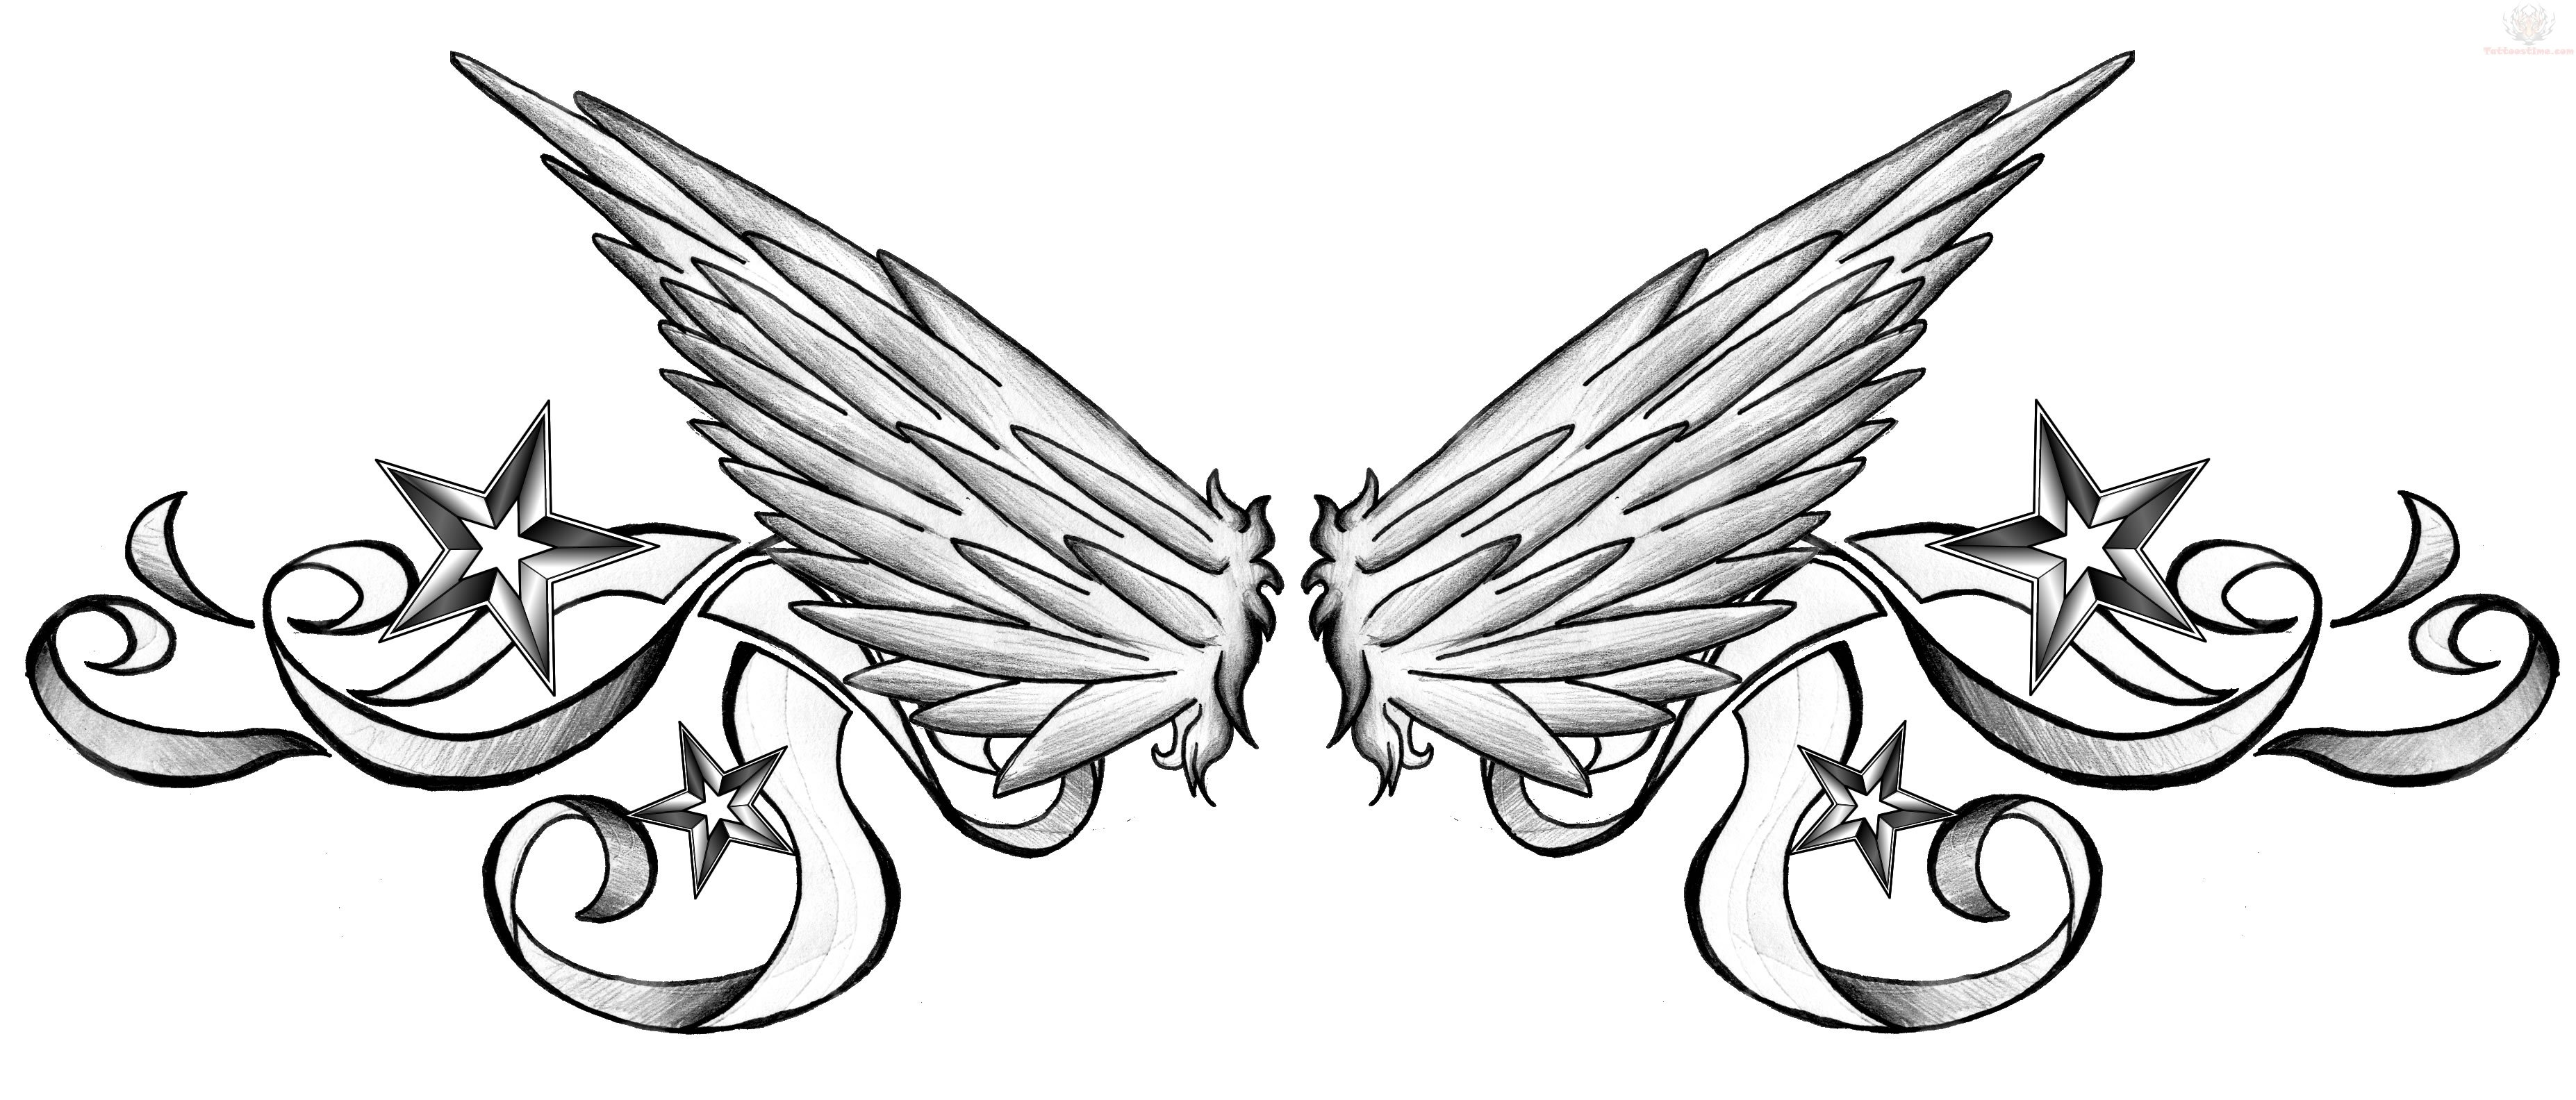 nautical stars and wings lowerback tattoo design. Black Bedroom Furniture Sets. Home Design Ideas